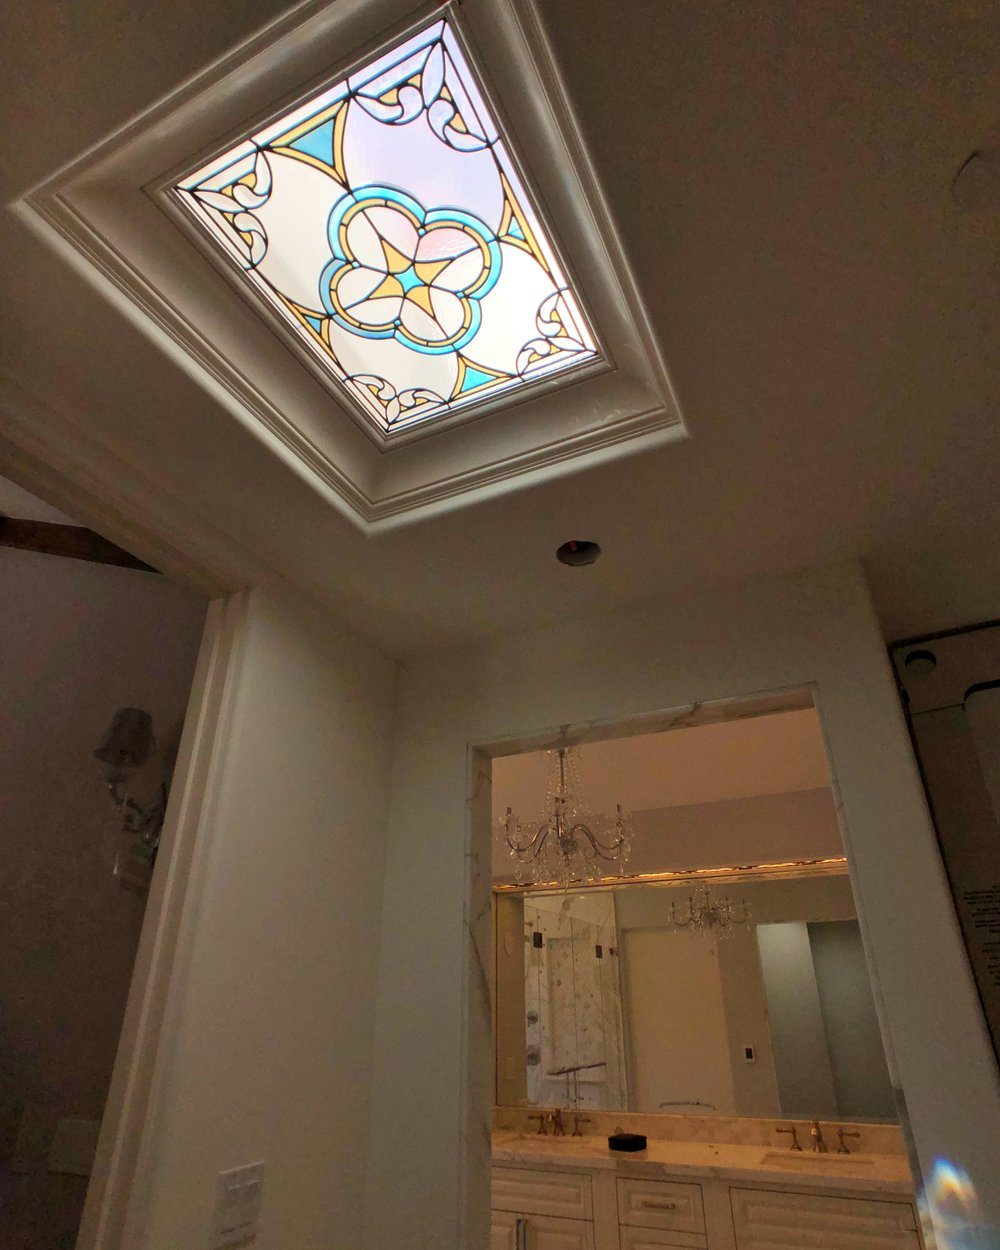 leaded glass stained glass custom design california legacy glass studios spanish quatrefoil design colorful beveled glass skylight rainbows master closet bathroom.jpg